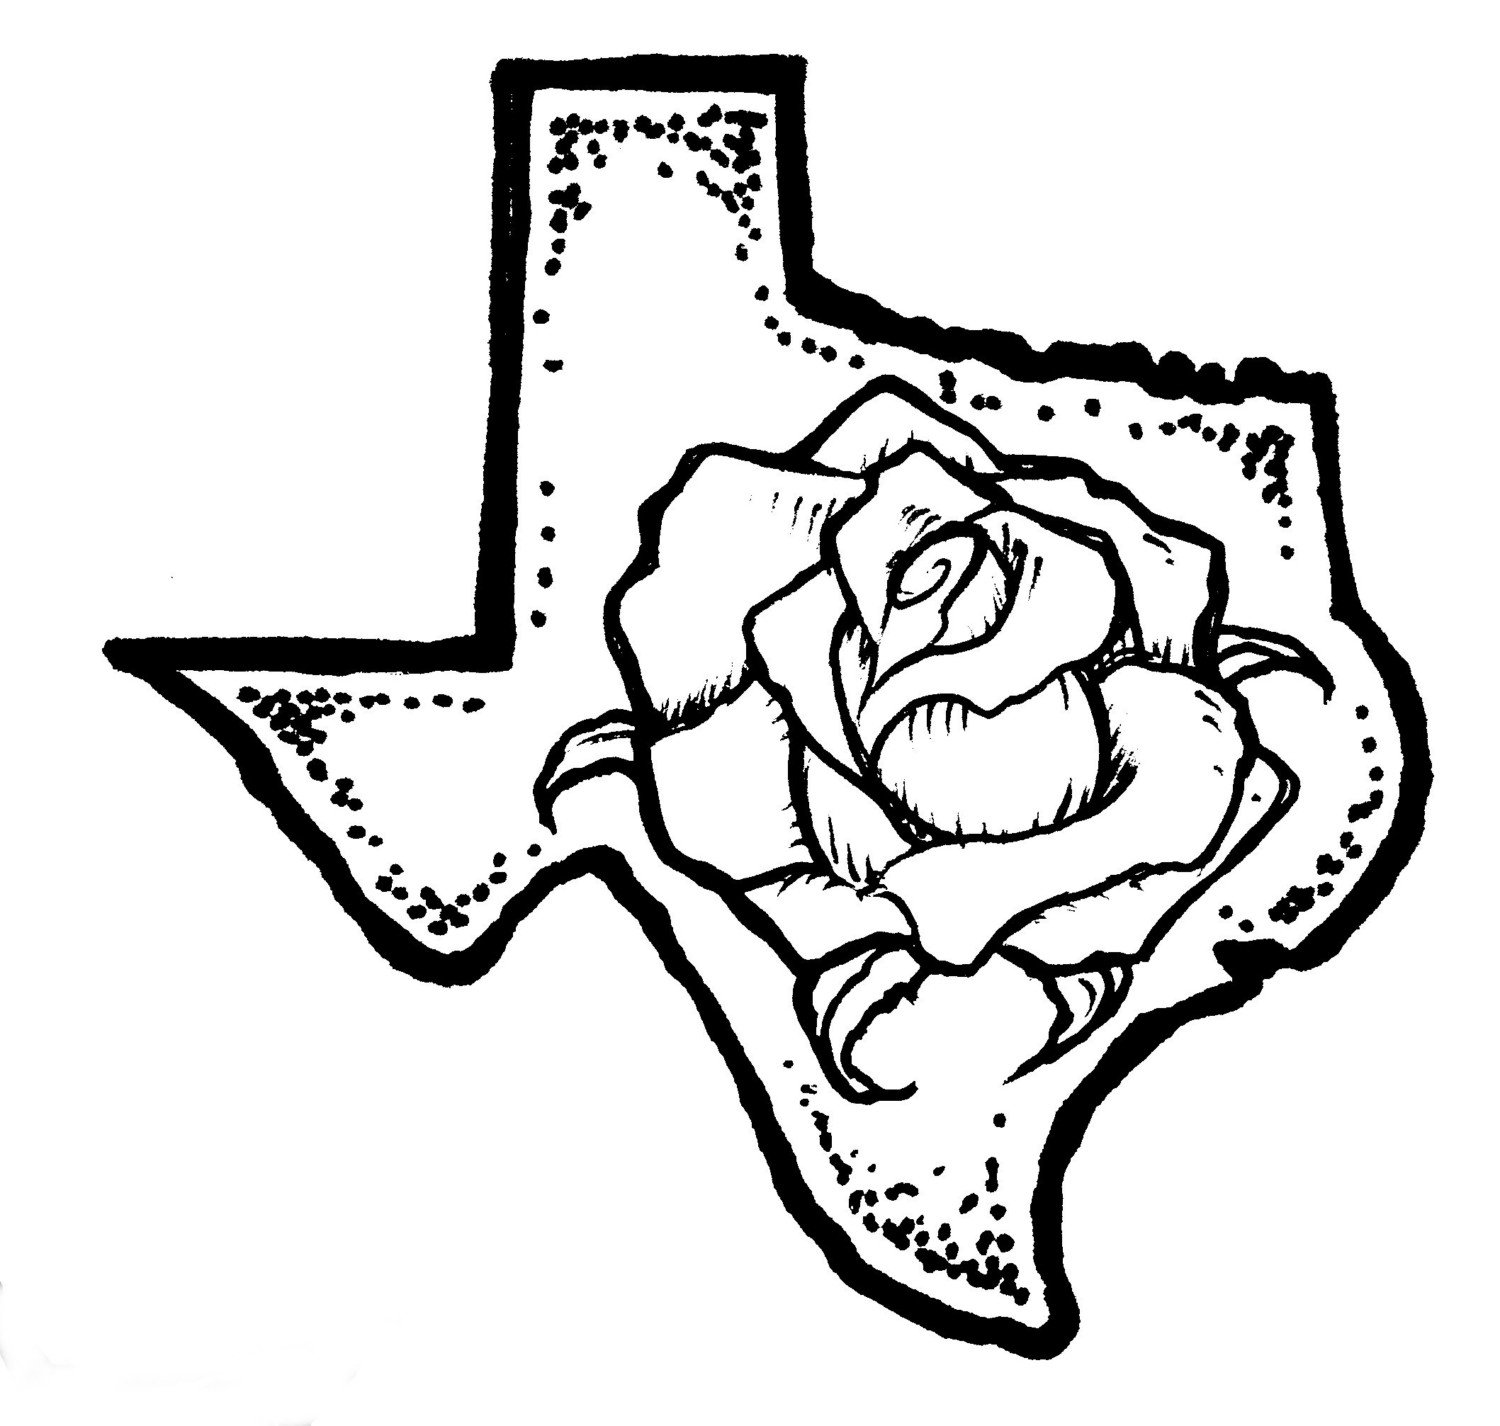 Yellow rose of texas clipart clip transparent library Yellow rose of texas clipart - ClipartBarn clip transparent library